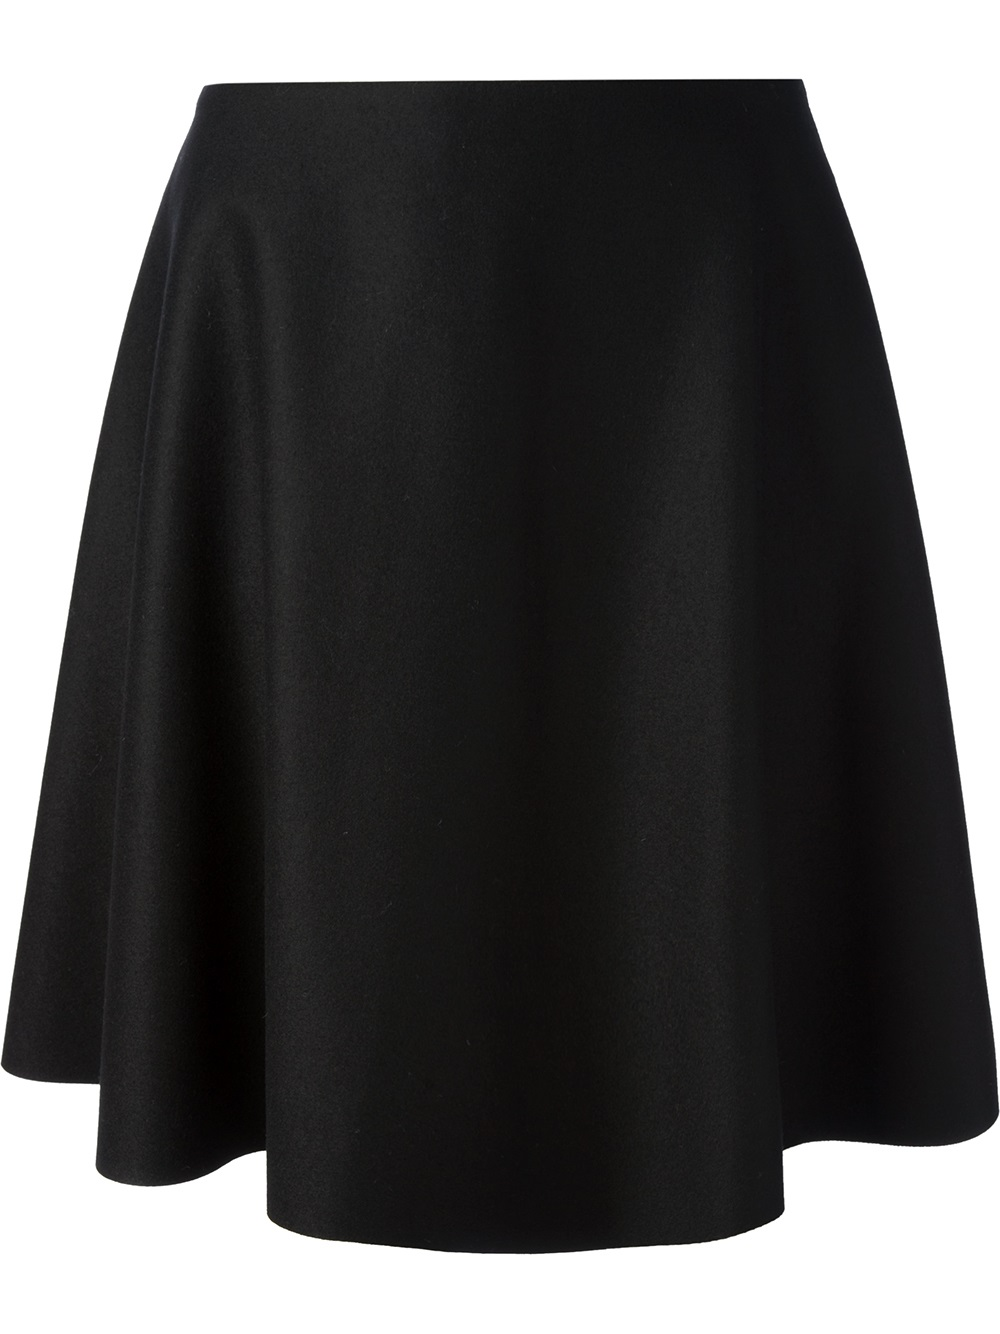 msgm skater skirt in black lyst